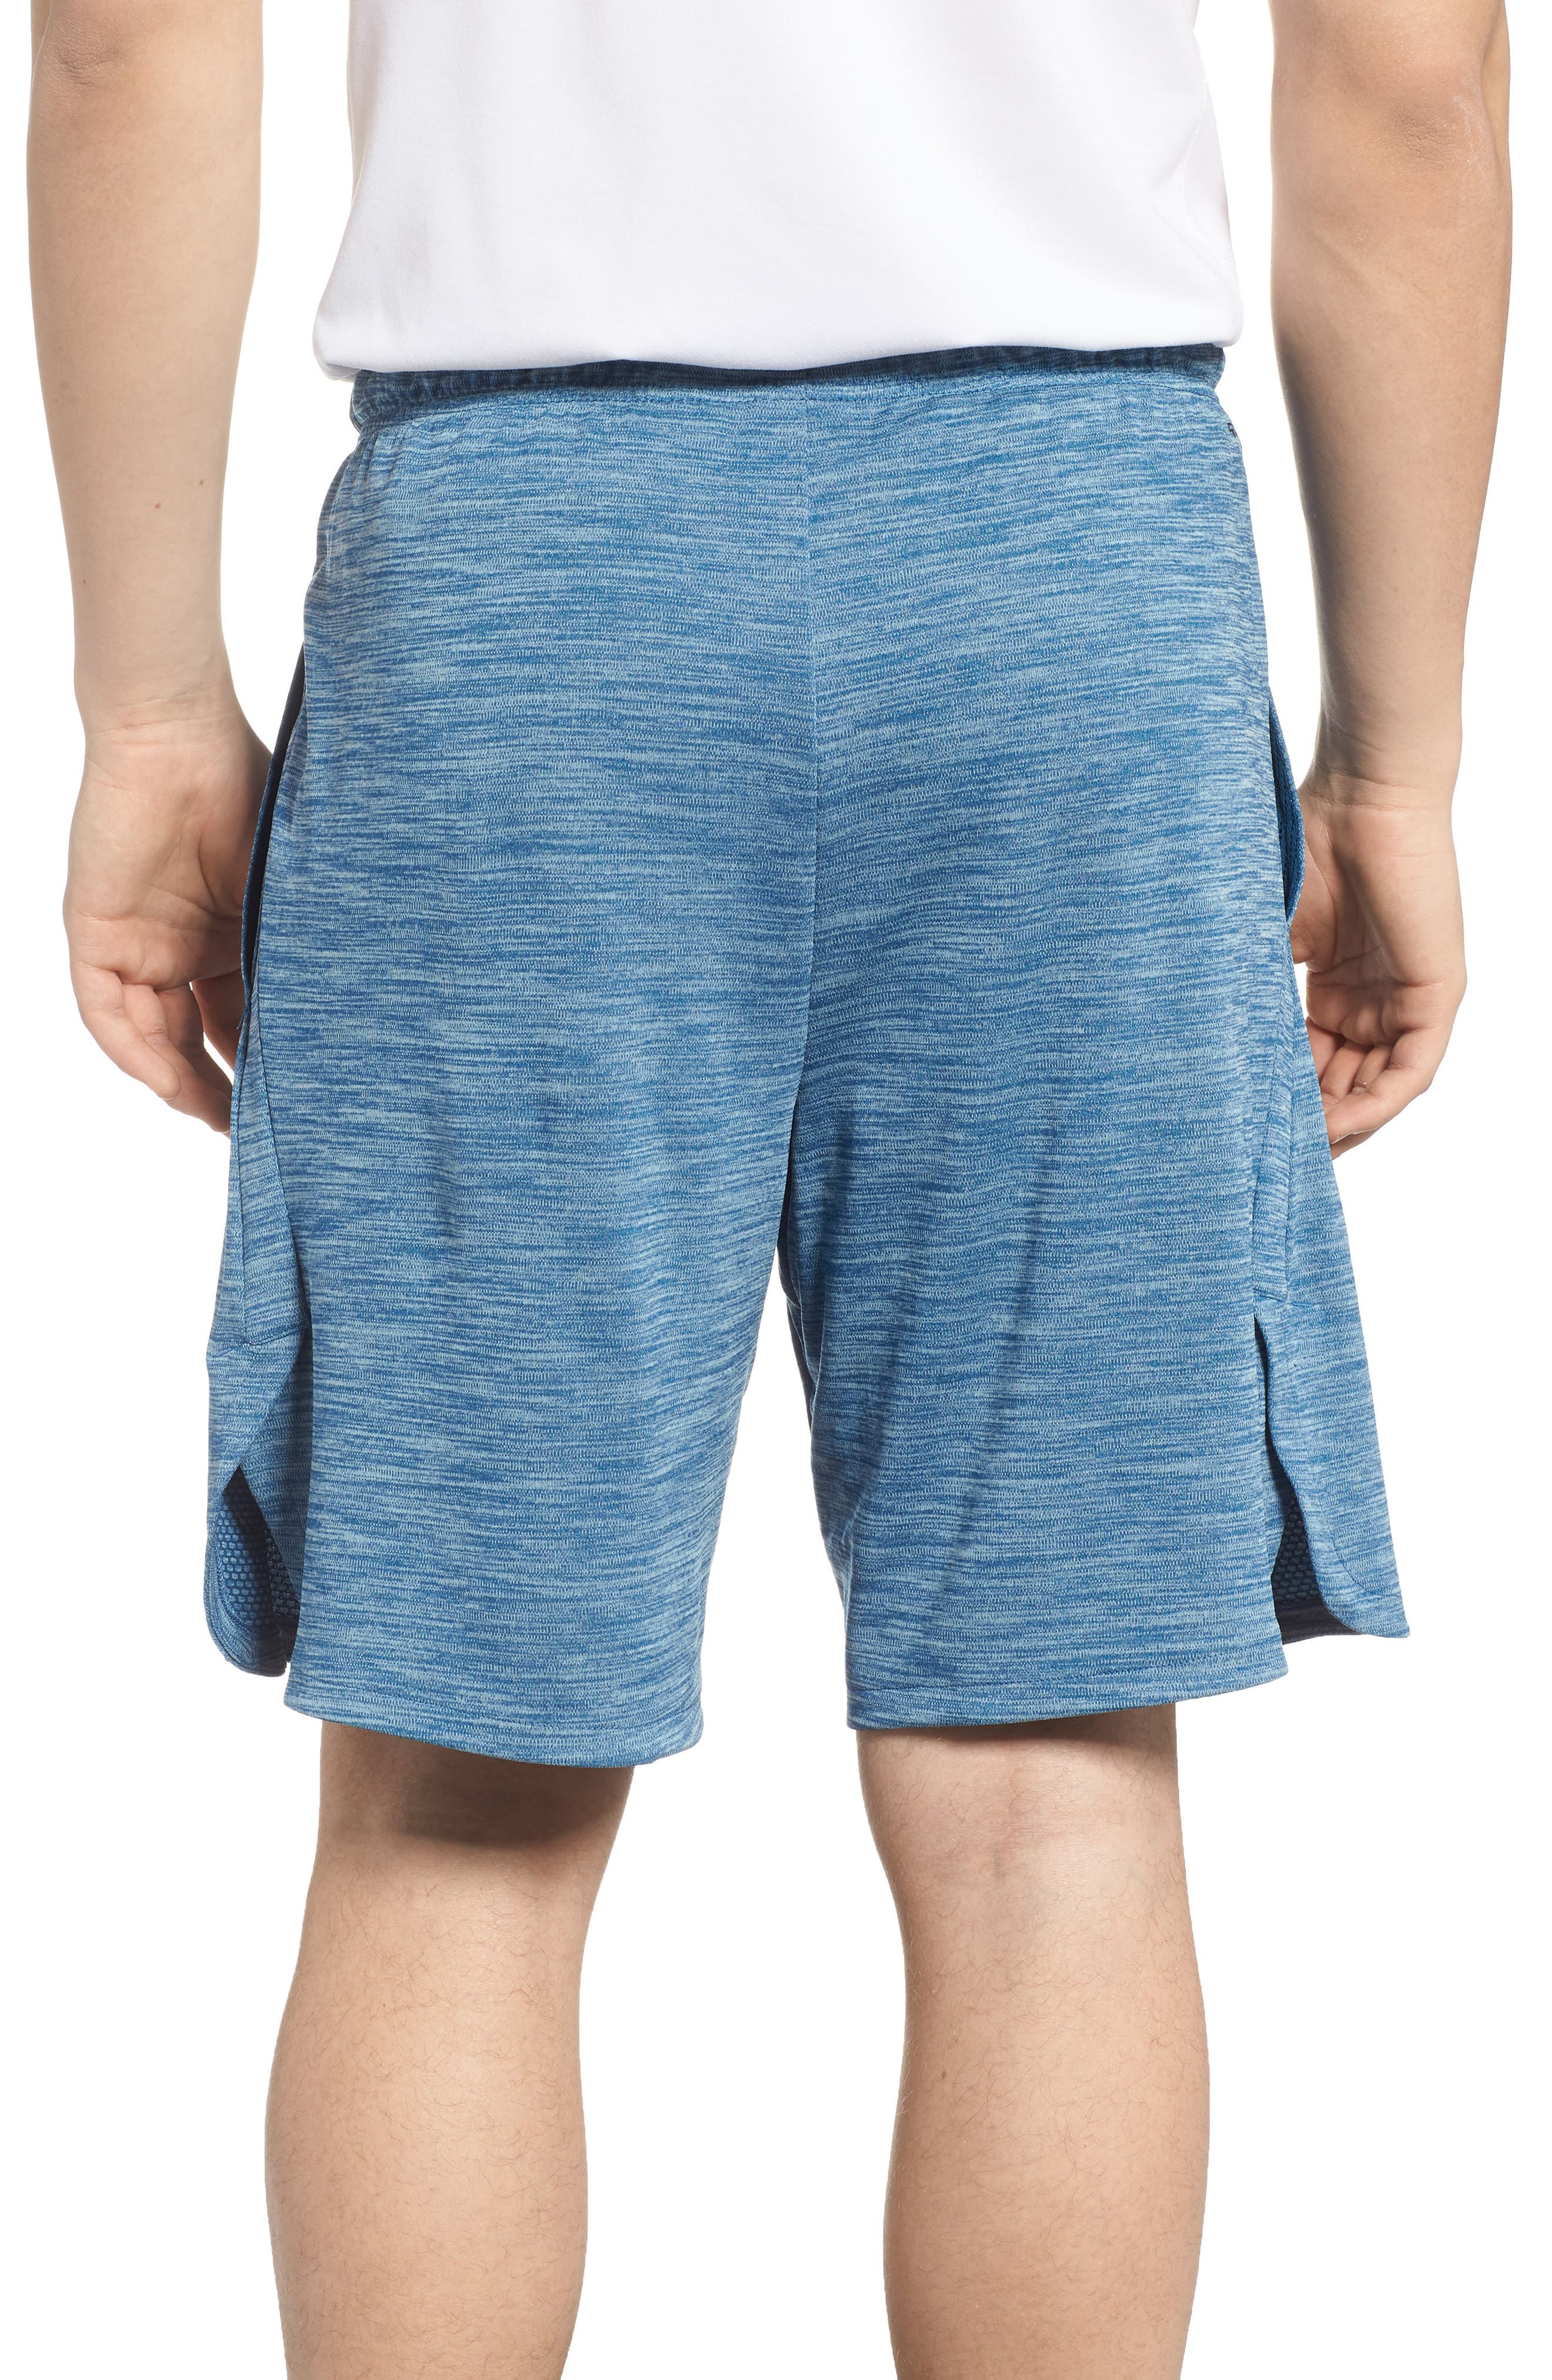 Dry Training Shorts,                             Alternate thumbnail 2, color,                             Blue Force/ Black